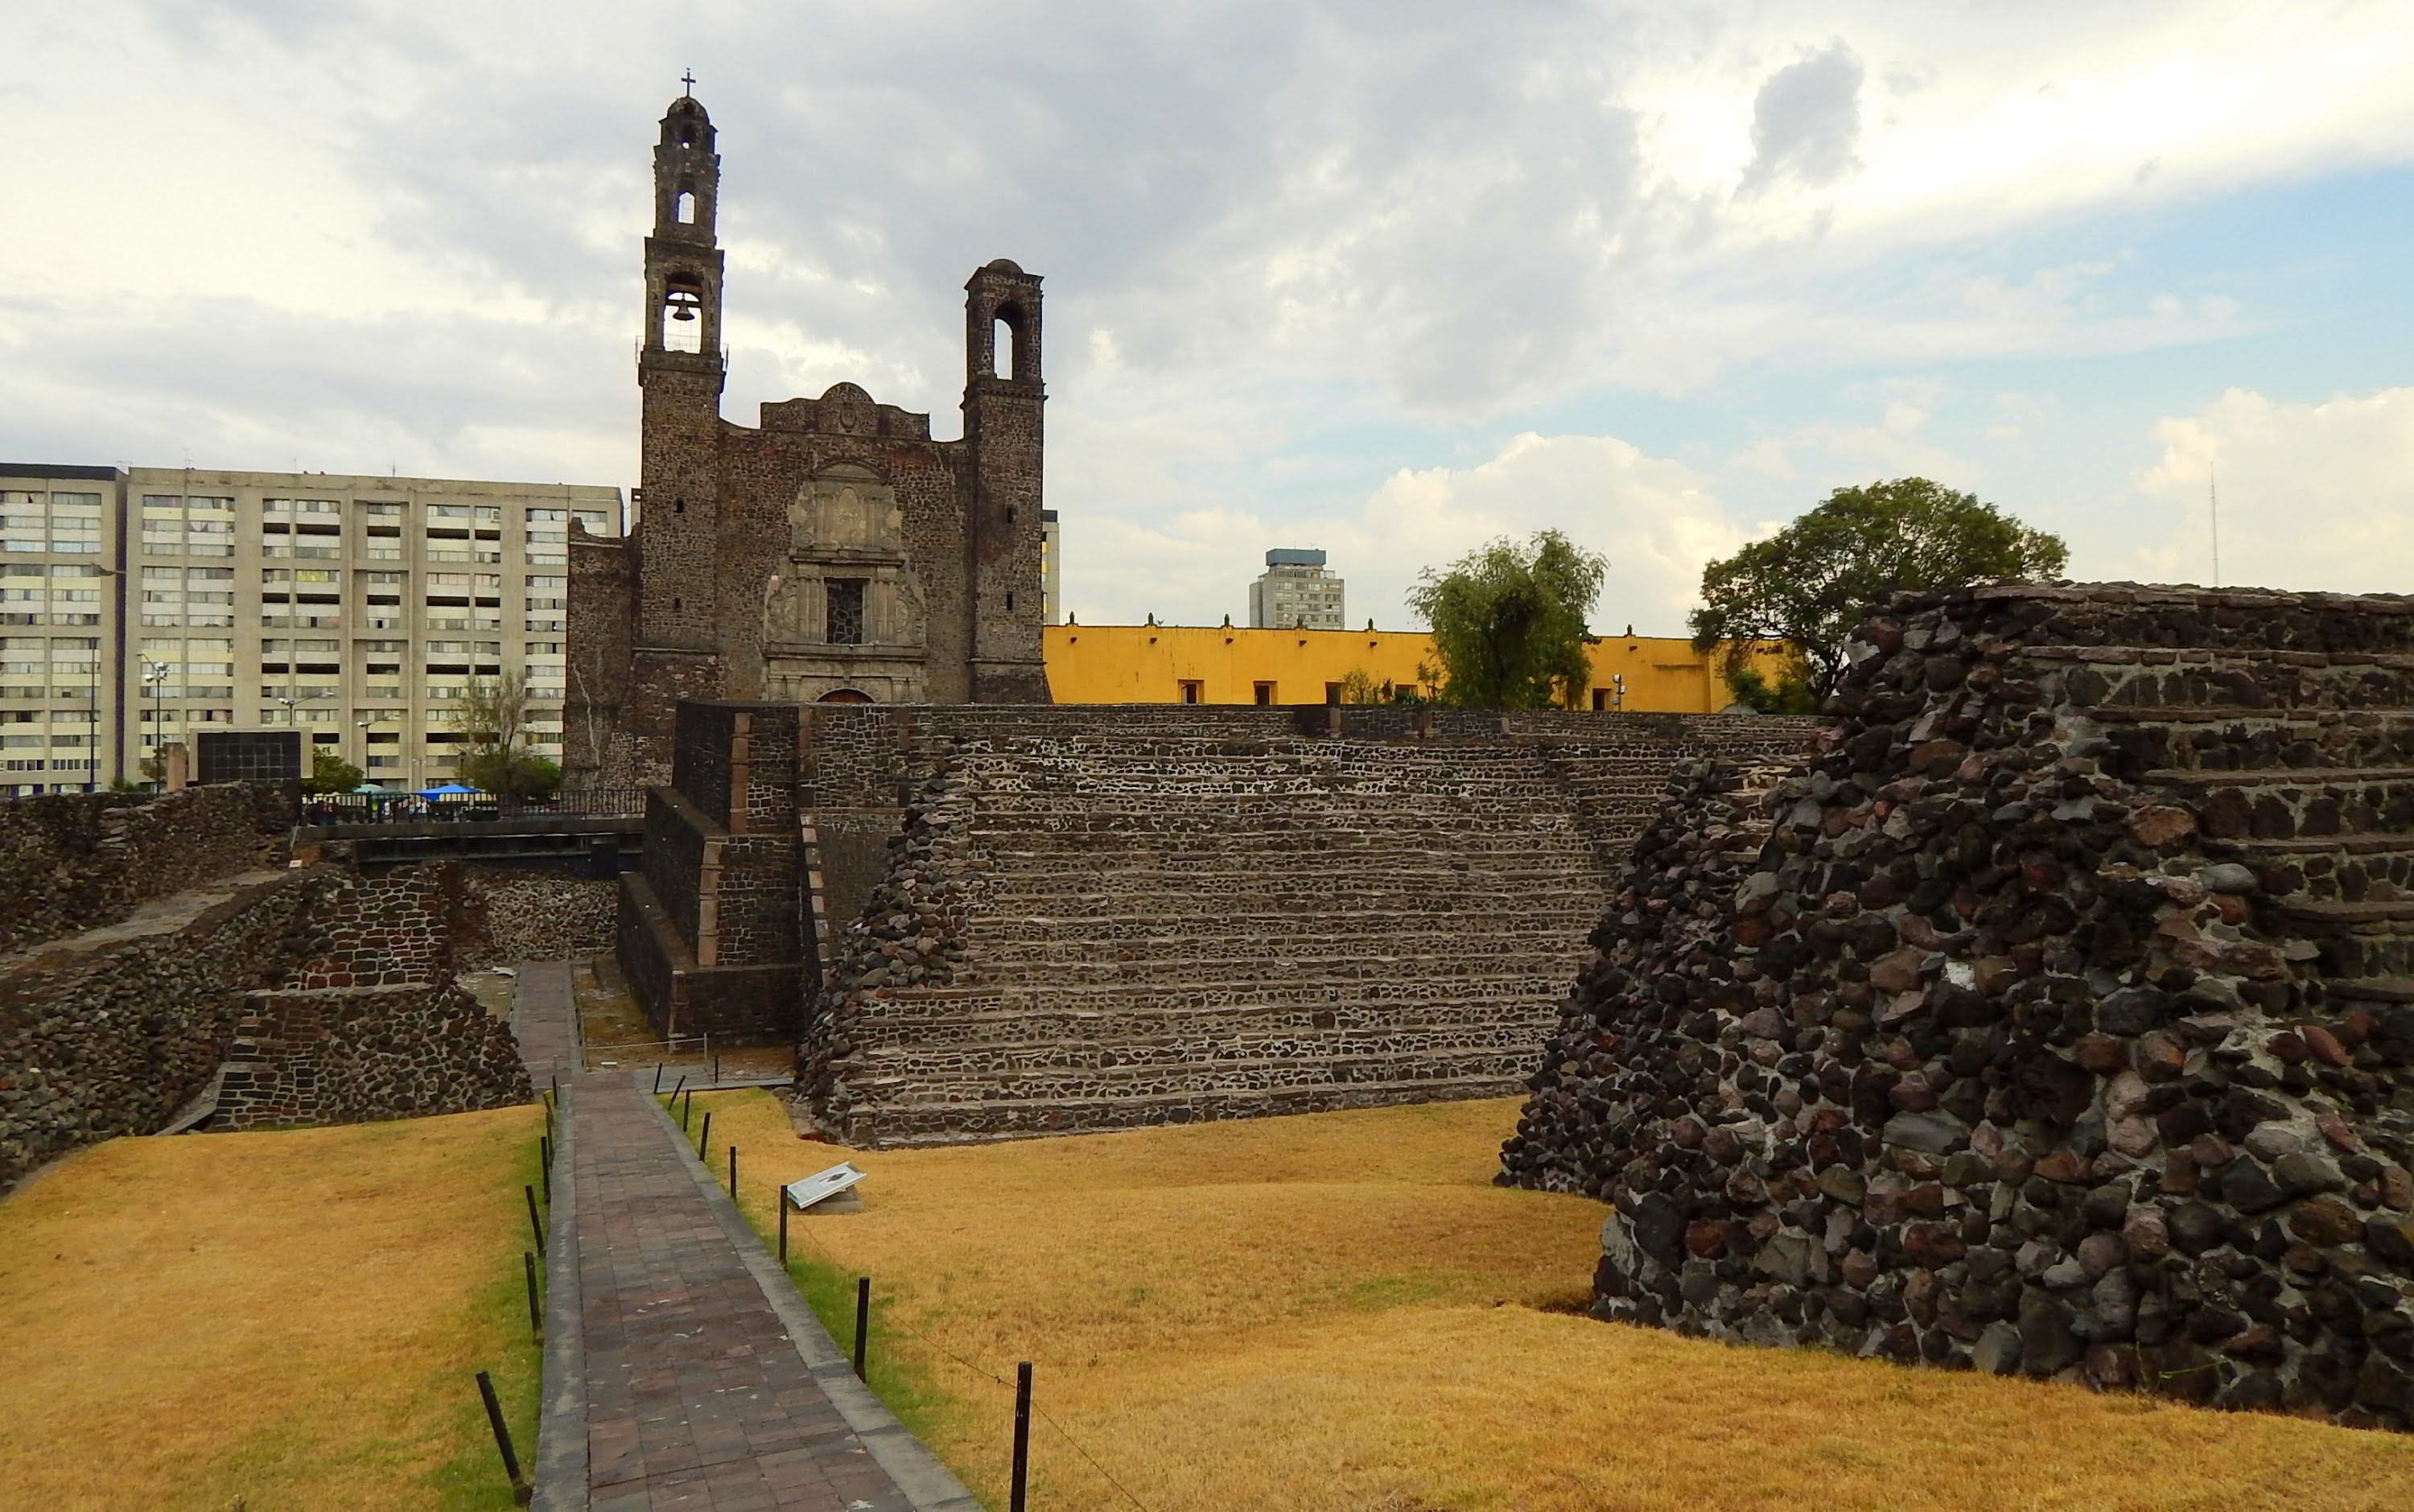 Tranvía Turístico Mexico City, Plaza de las Tres Culturas - Tlatelolco, Mexico City - YouTube